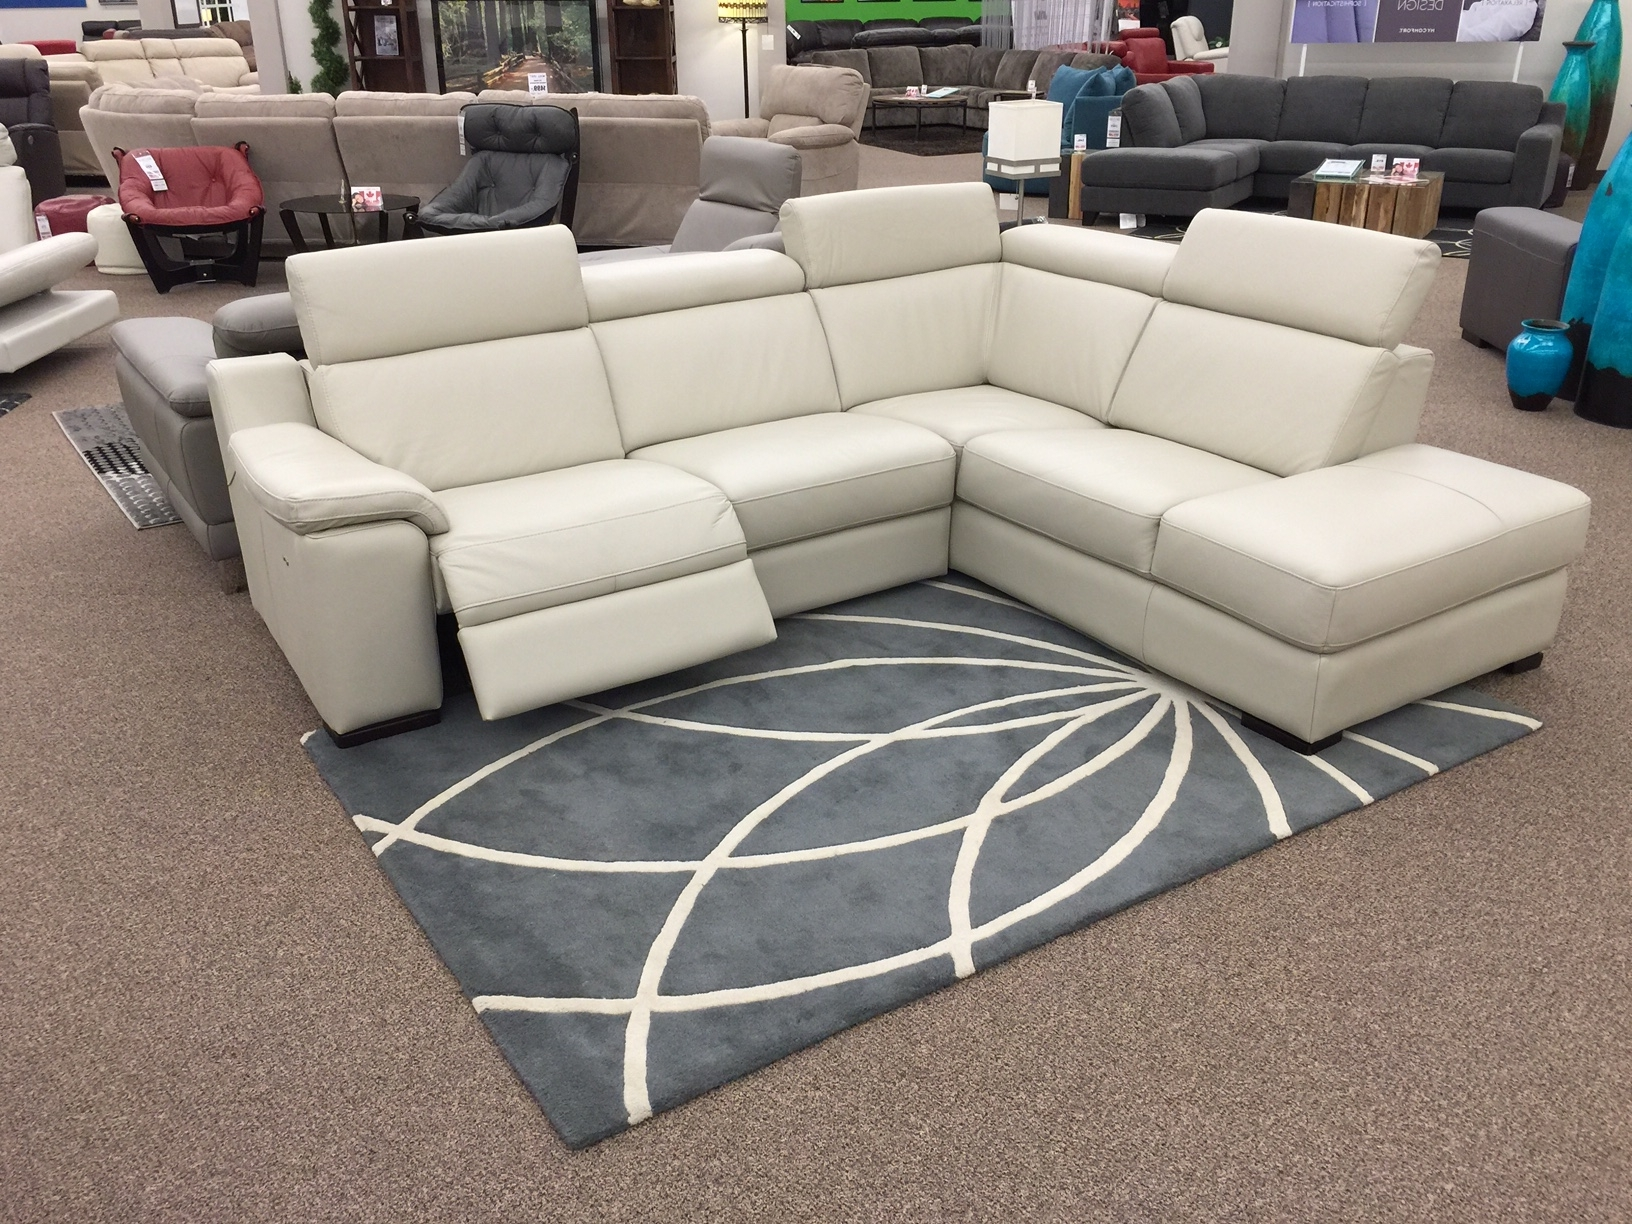 [%The Ashlynn Sectional Just Arrived At Sofa Land! This 100% Leather With Regard To Current Sectional Sofas In Stock|Sectional Sofas In Stock With Regard To Well Known The Ashlynn Sectional Just Arrived At Sofa Land! This 100% Leather|Preferred Sectional Sofas In Stock Pertaining To The Ashlynn Sectional Just Arrived At Sofa Land! This 100% Leather|Fashionable The Ashlynn Sectional Just Arrived At Sofa Land! This 100% Leather With Sectional Sofas In Stock%] (View 11 of 15)